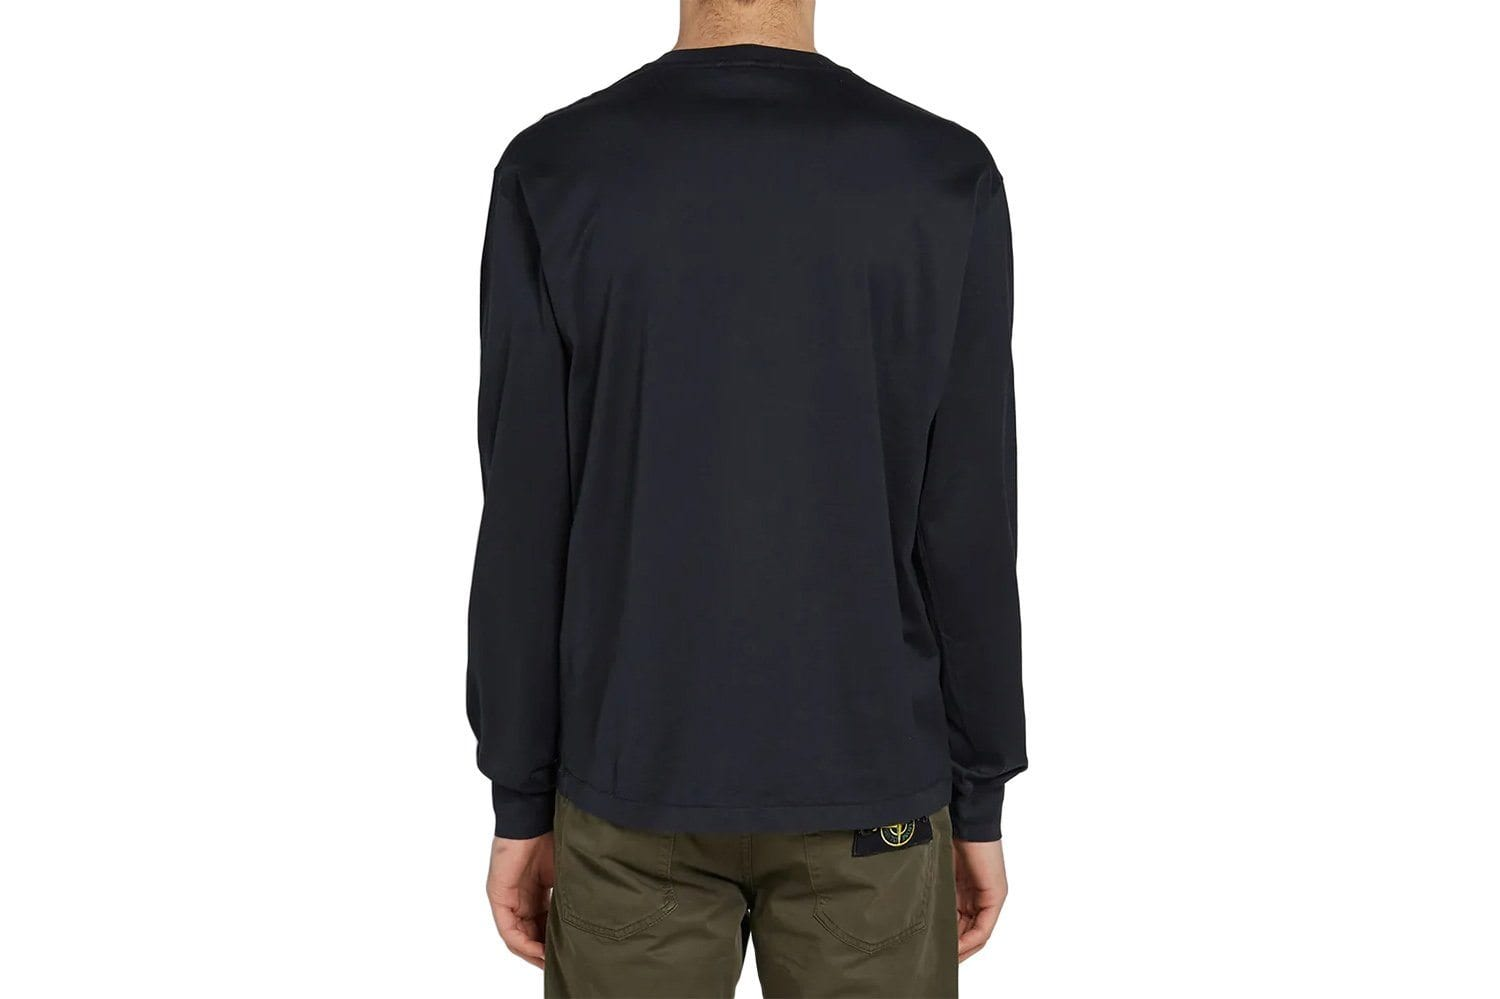 61bb7fd9 SMALL PATCH LONG SLEEVE TEE - MO701522713. STONE ISLAND